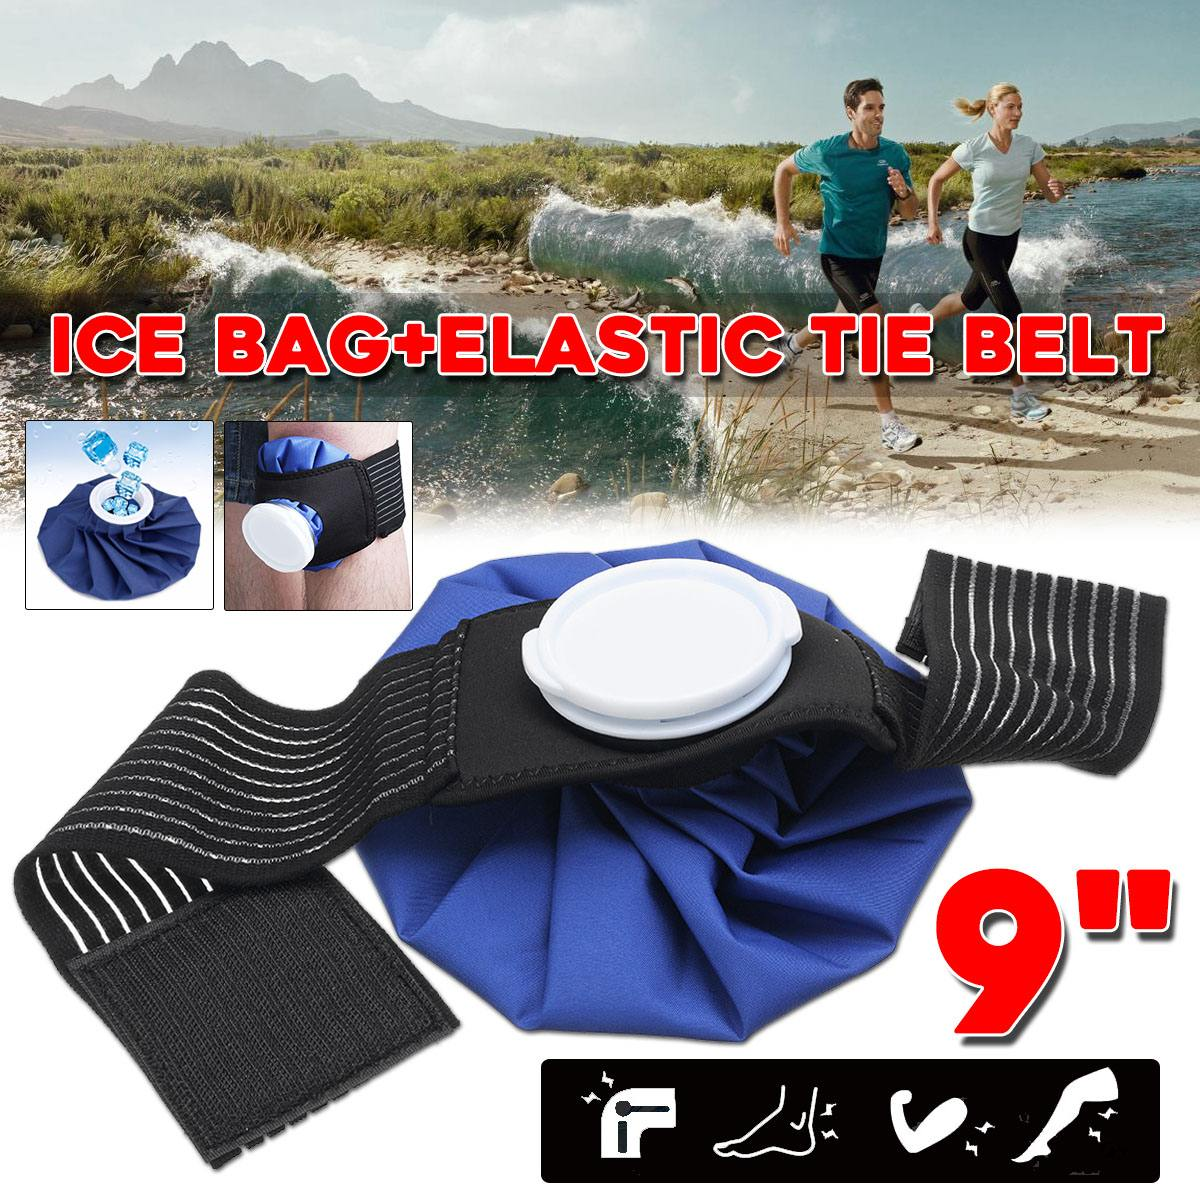 NEW 9'' Ice Bag Pack W/Protector Elastic Tie Belt Set Reusable Knee Head Leg Injury Pain Relief Ice Bag Health Care First Aid